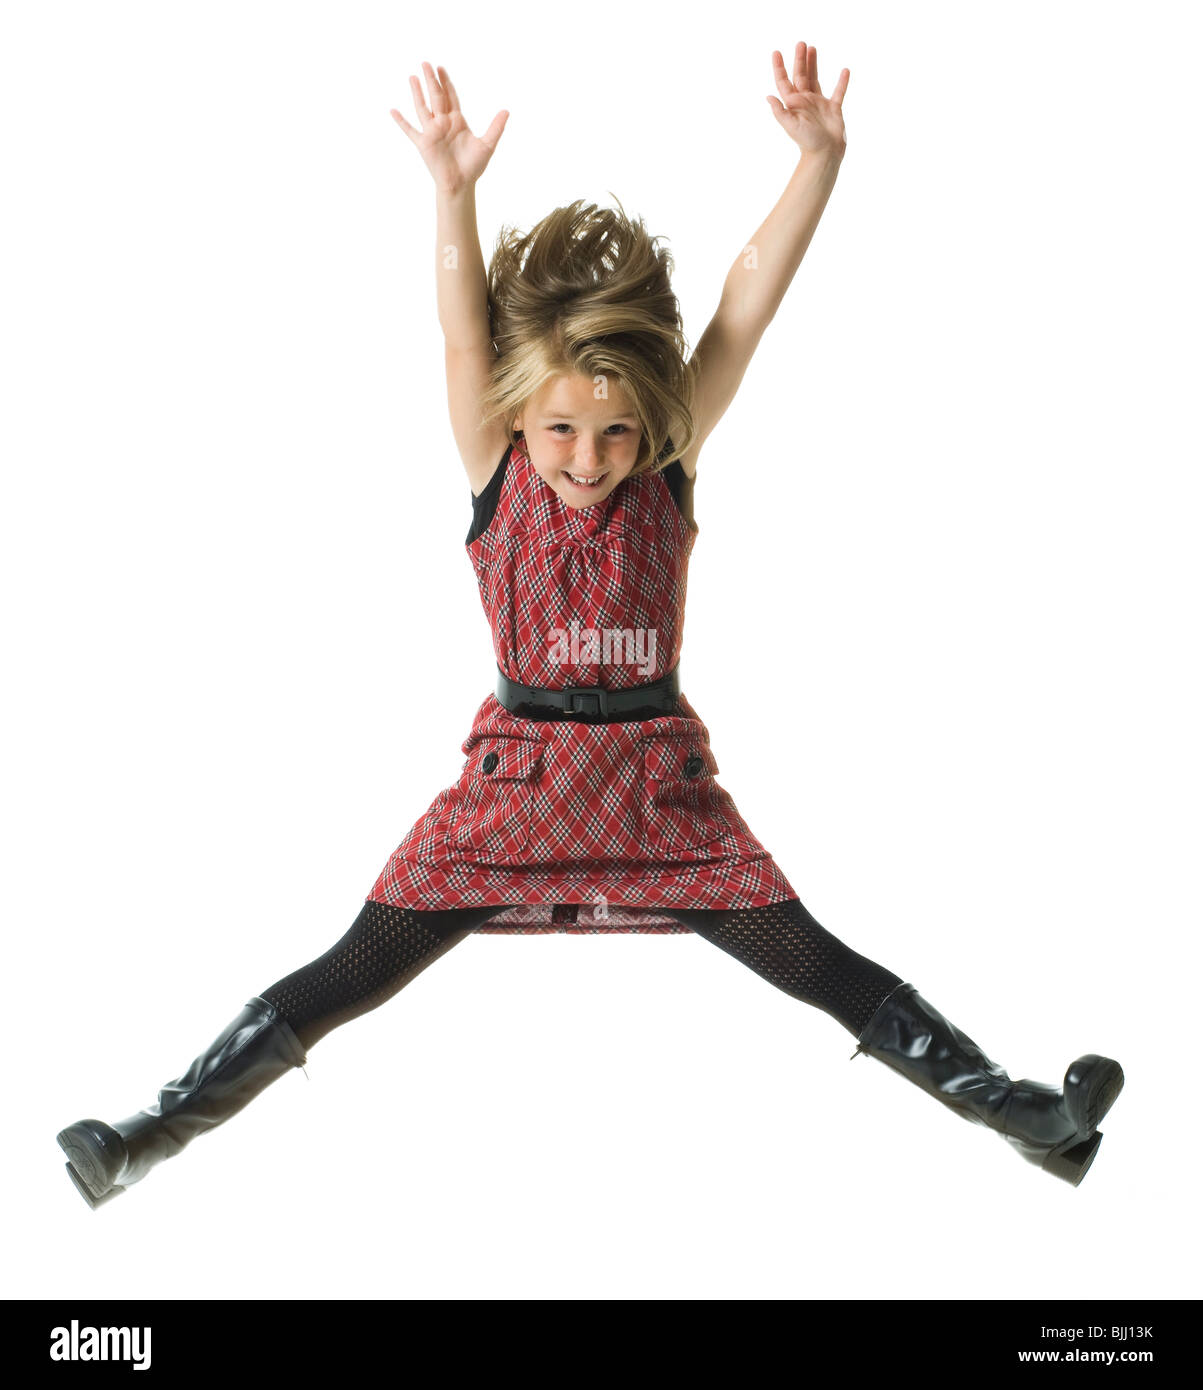 Girl smiling and leaping - Stock Image